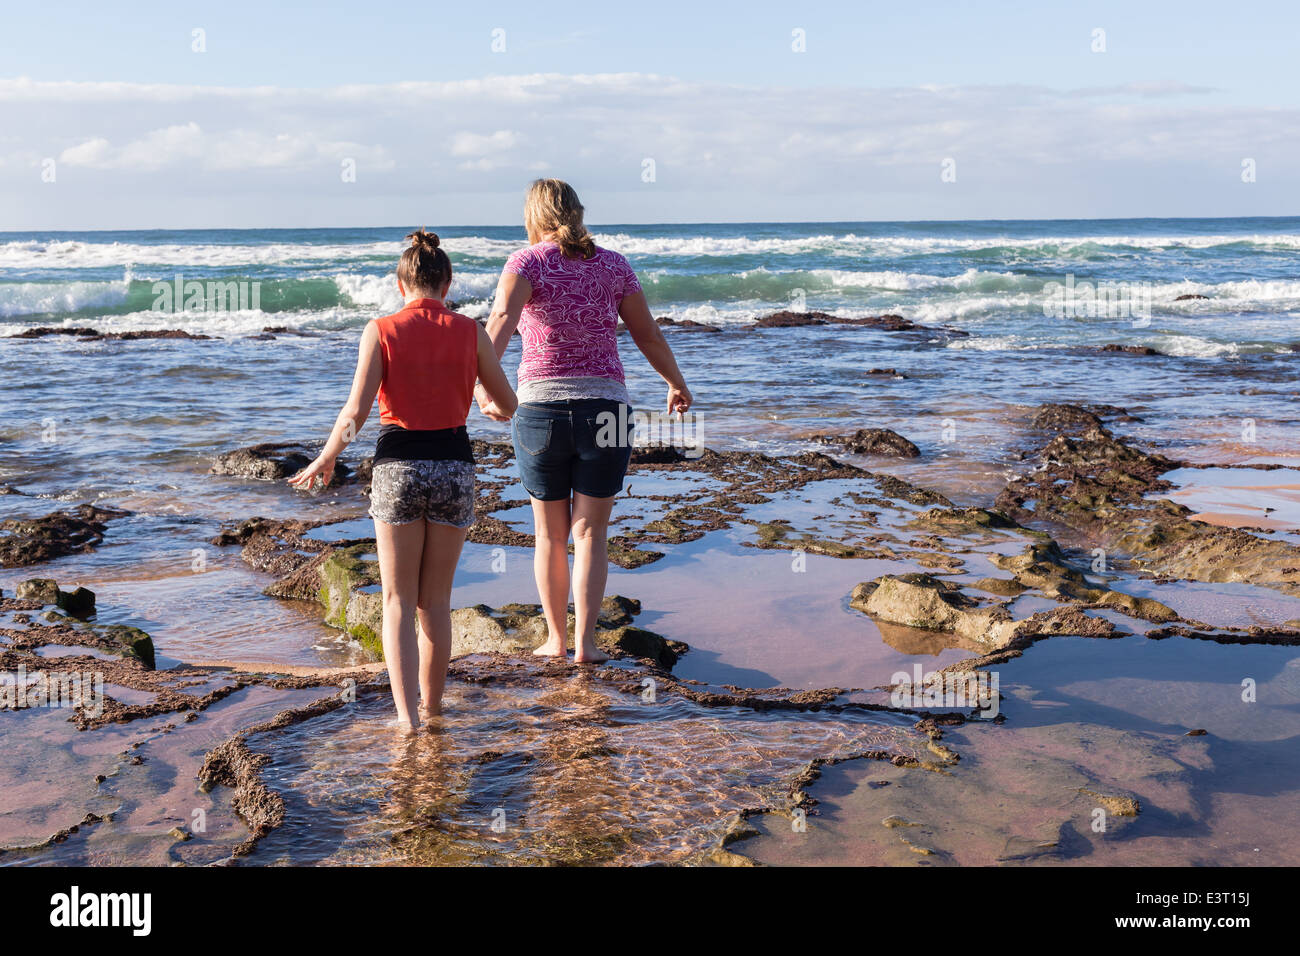 Mother daughter walking exploring beach ocean shallow exposed reefs rear photo. - Stock Image